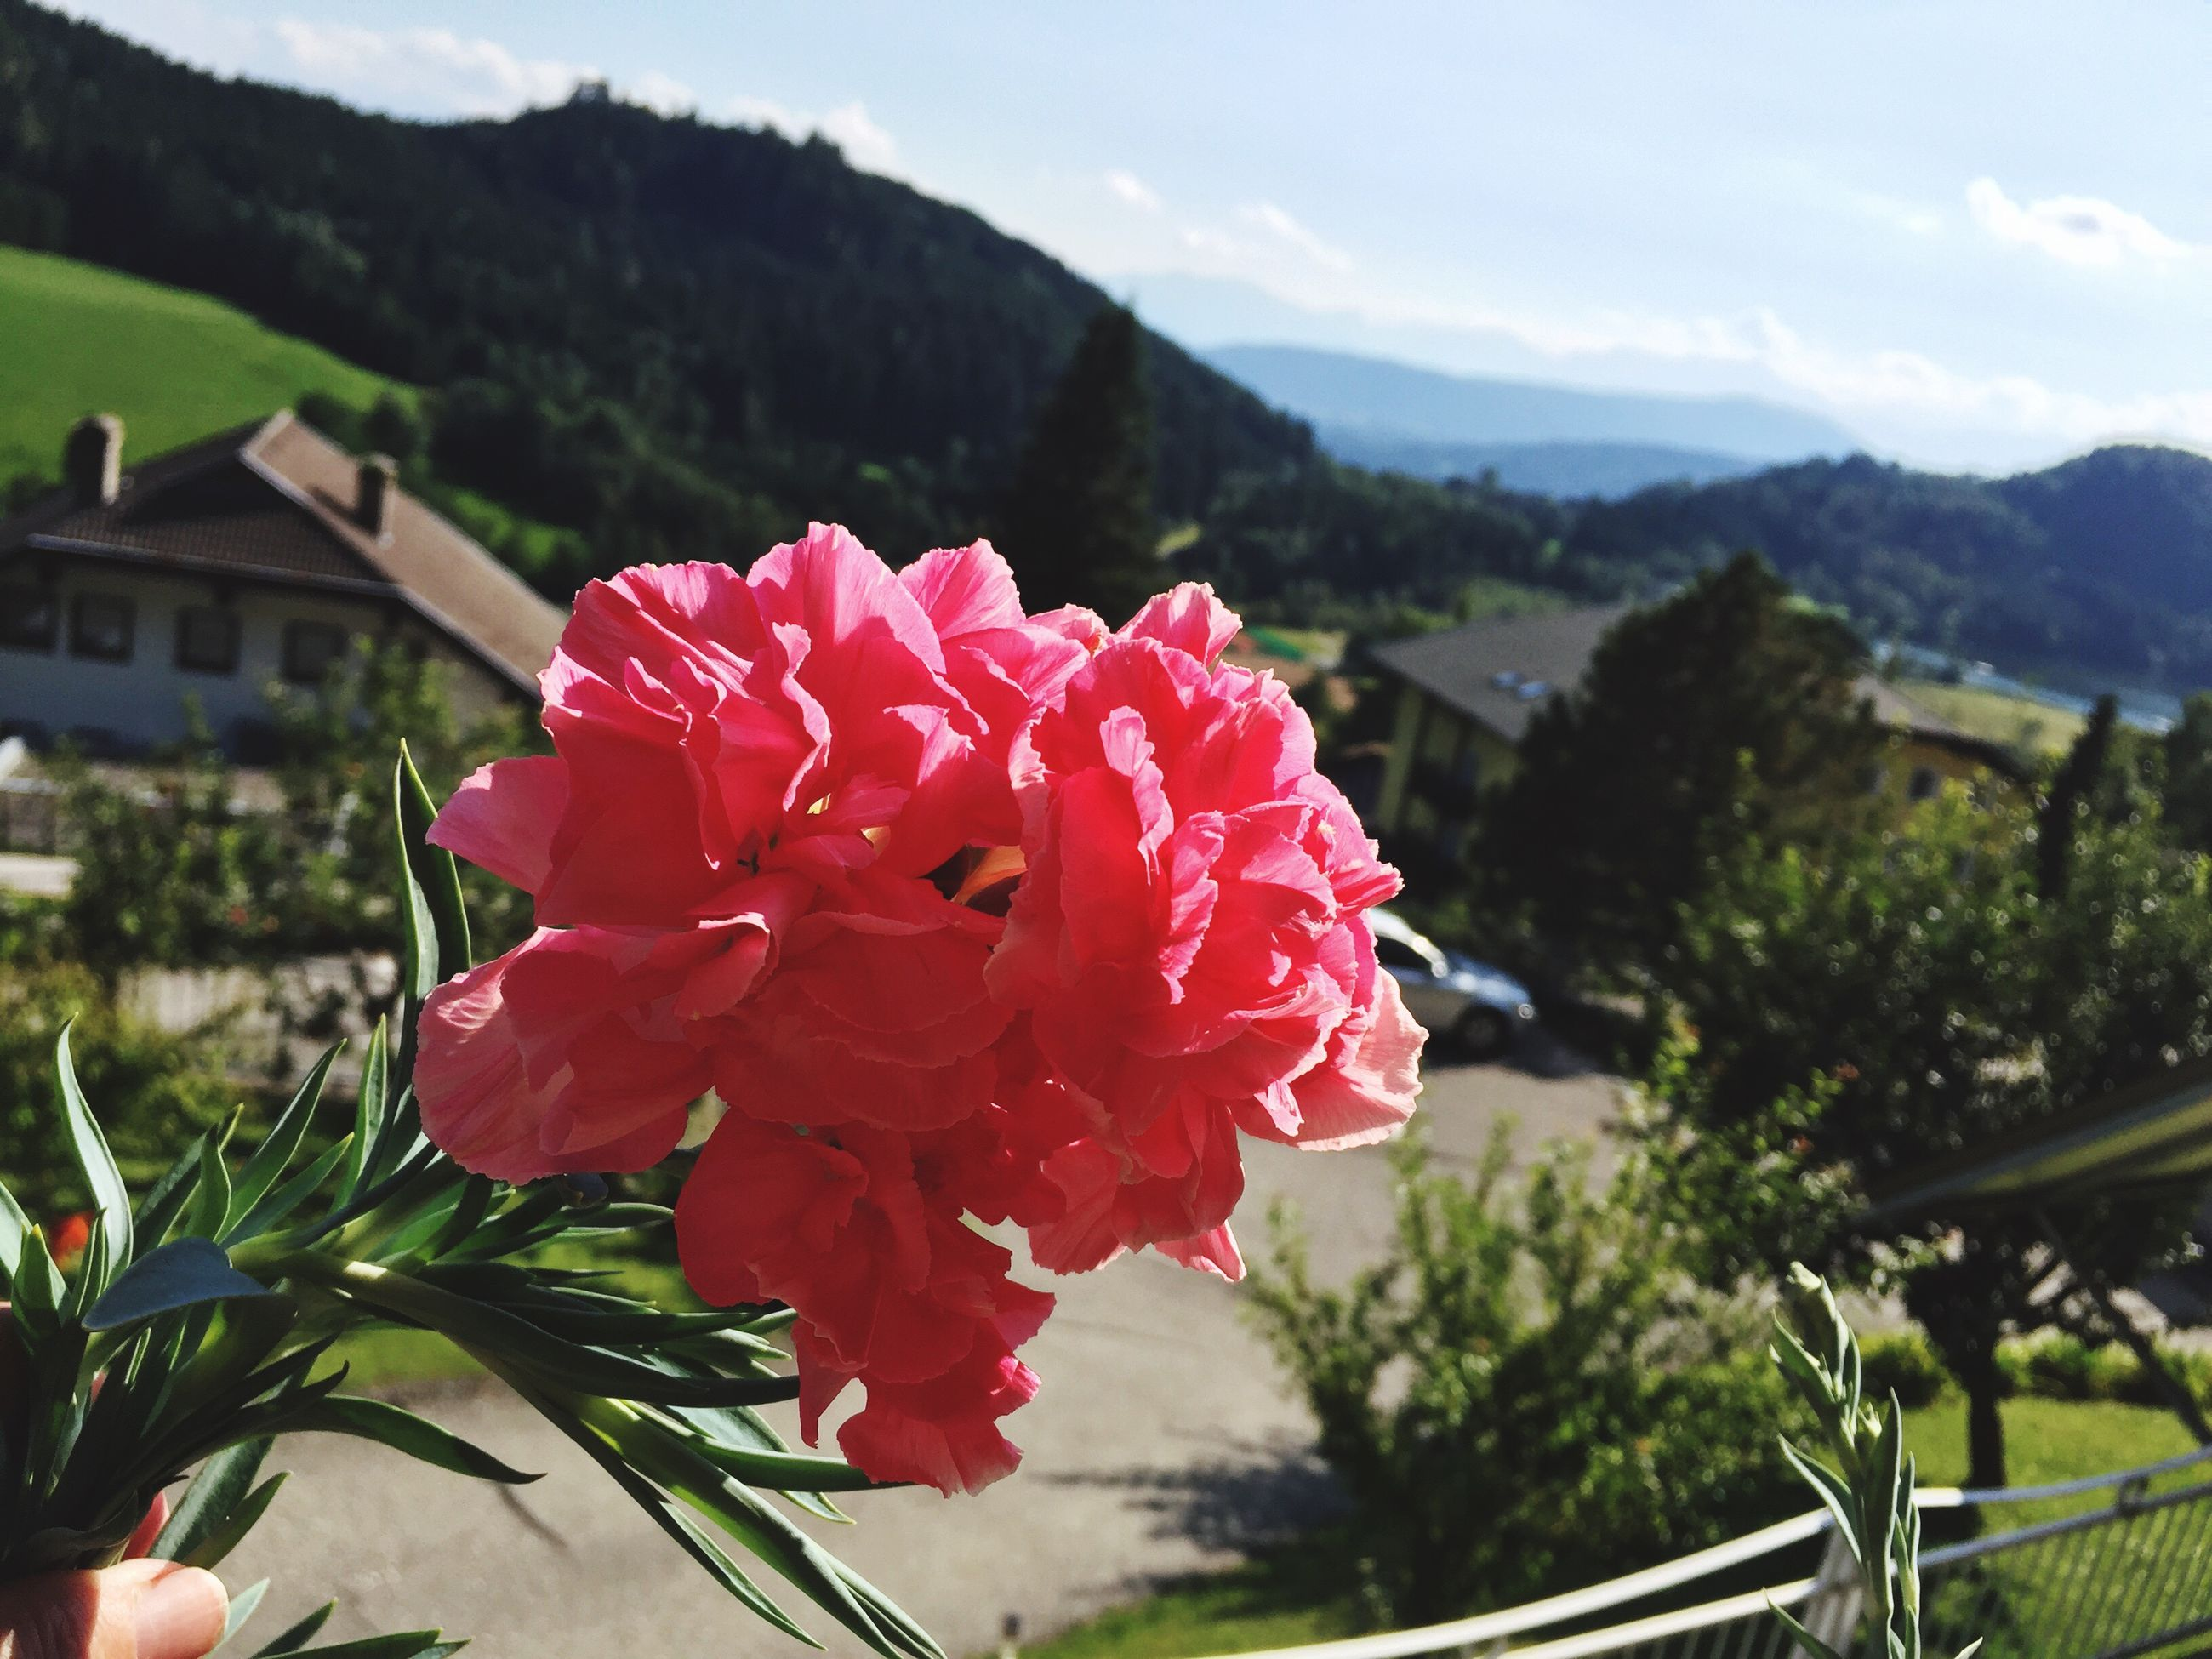 flower, mountain, fragility, freshness, beauty in nature, growth, close-up, petal, nature, focus on foreground, pink color, flower head, mountain range, plant, scenics, in bloom, springtime, rose - flower, sky, blossom, day, outdoors, blooming, tranquility, red, botany, rose, softness, green color